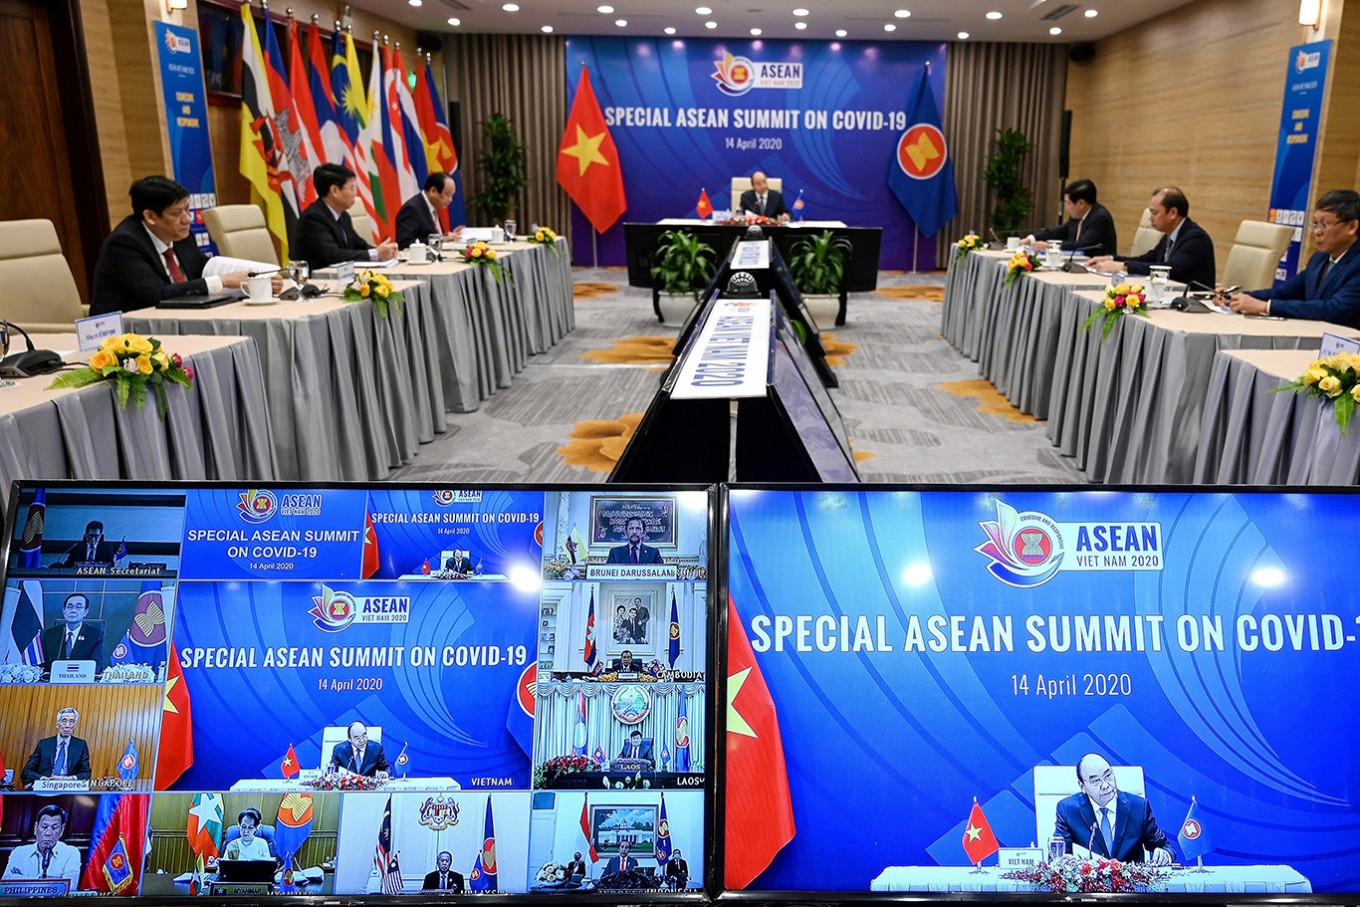 How will ASEAN leaders approach regional COVID-19 response at 36th summit?